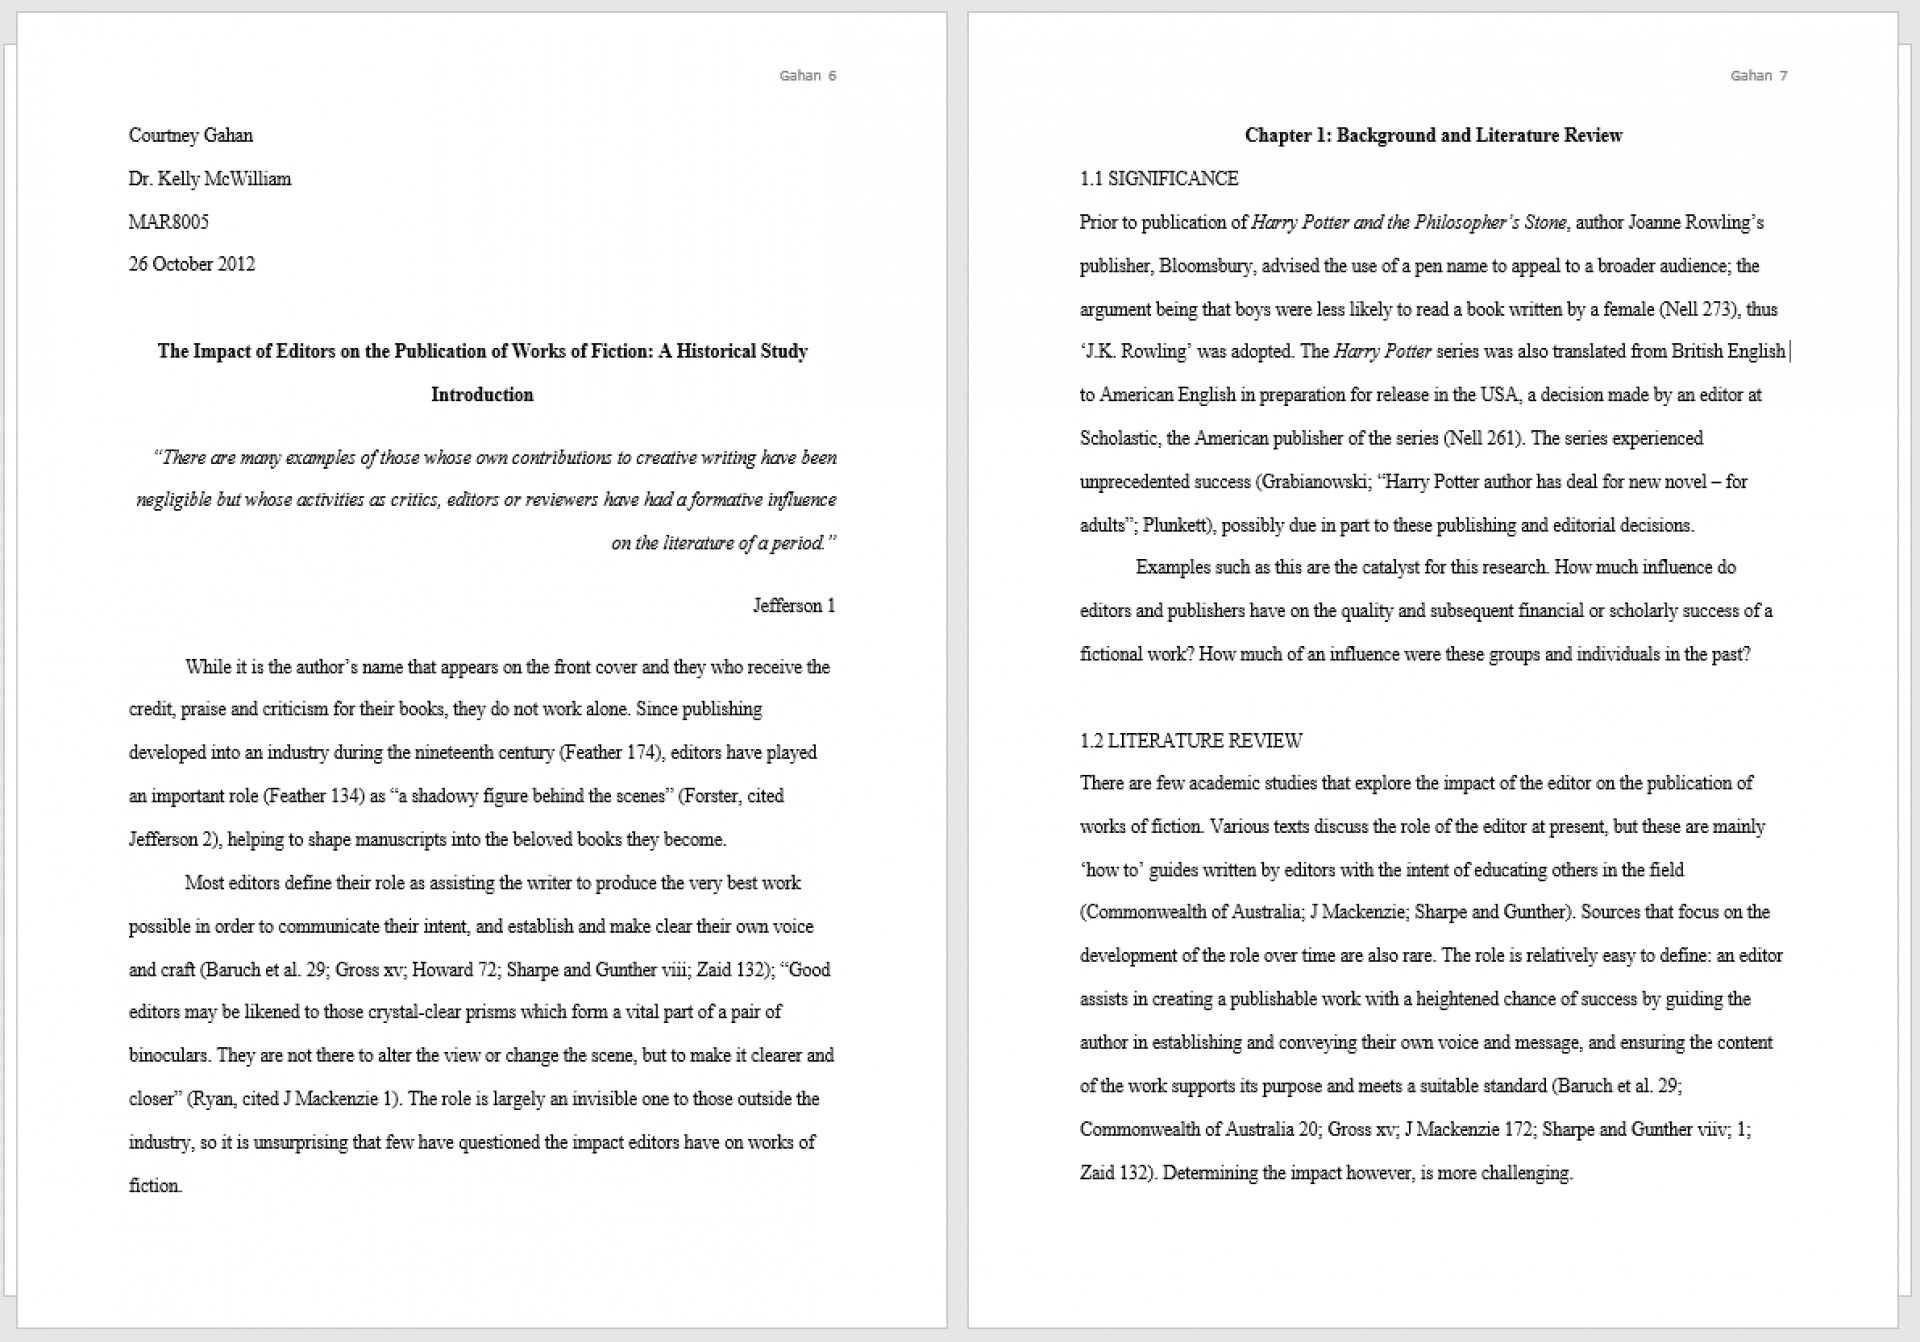 011 Writing An Essay In Mla Format Example Thesis Two Pages Amazing Steps To How Write 1920